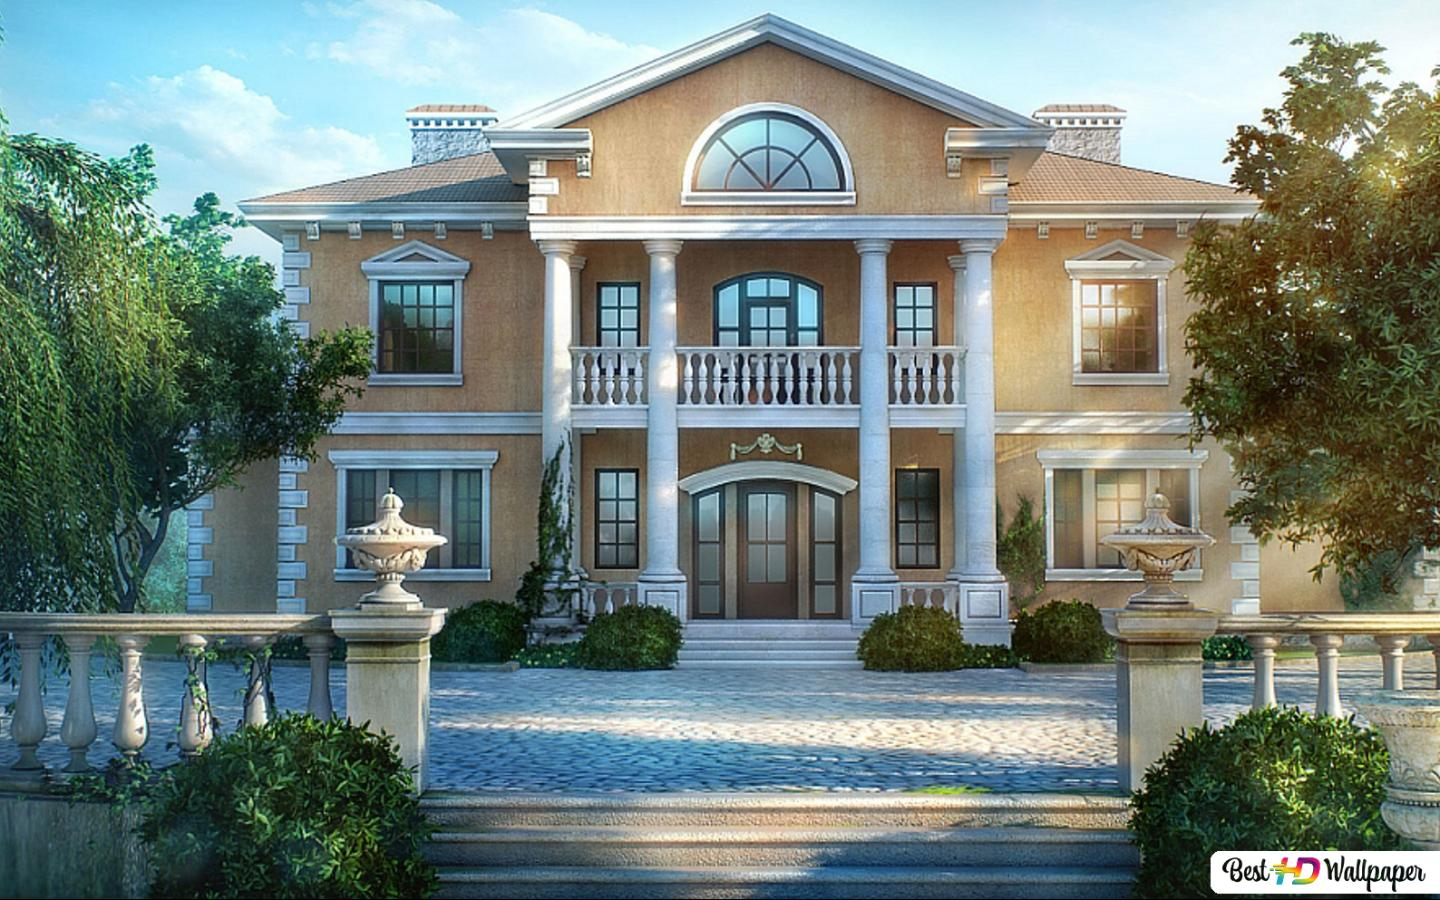 House Front View Hd Wallpaper Download